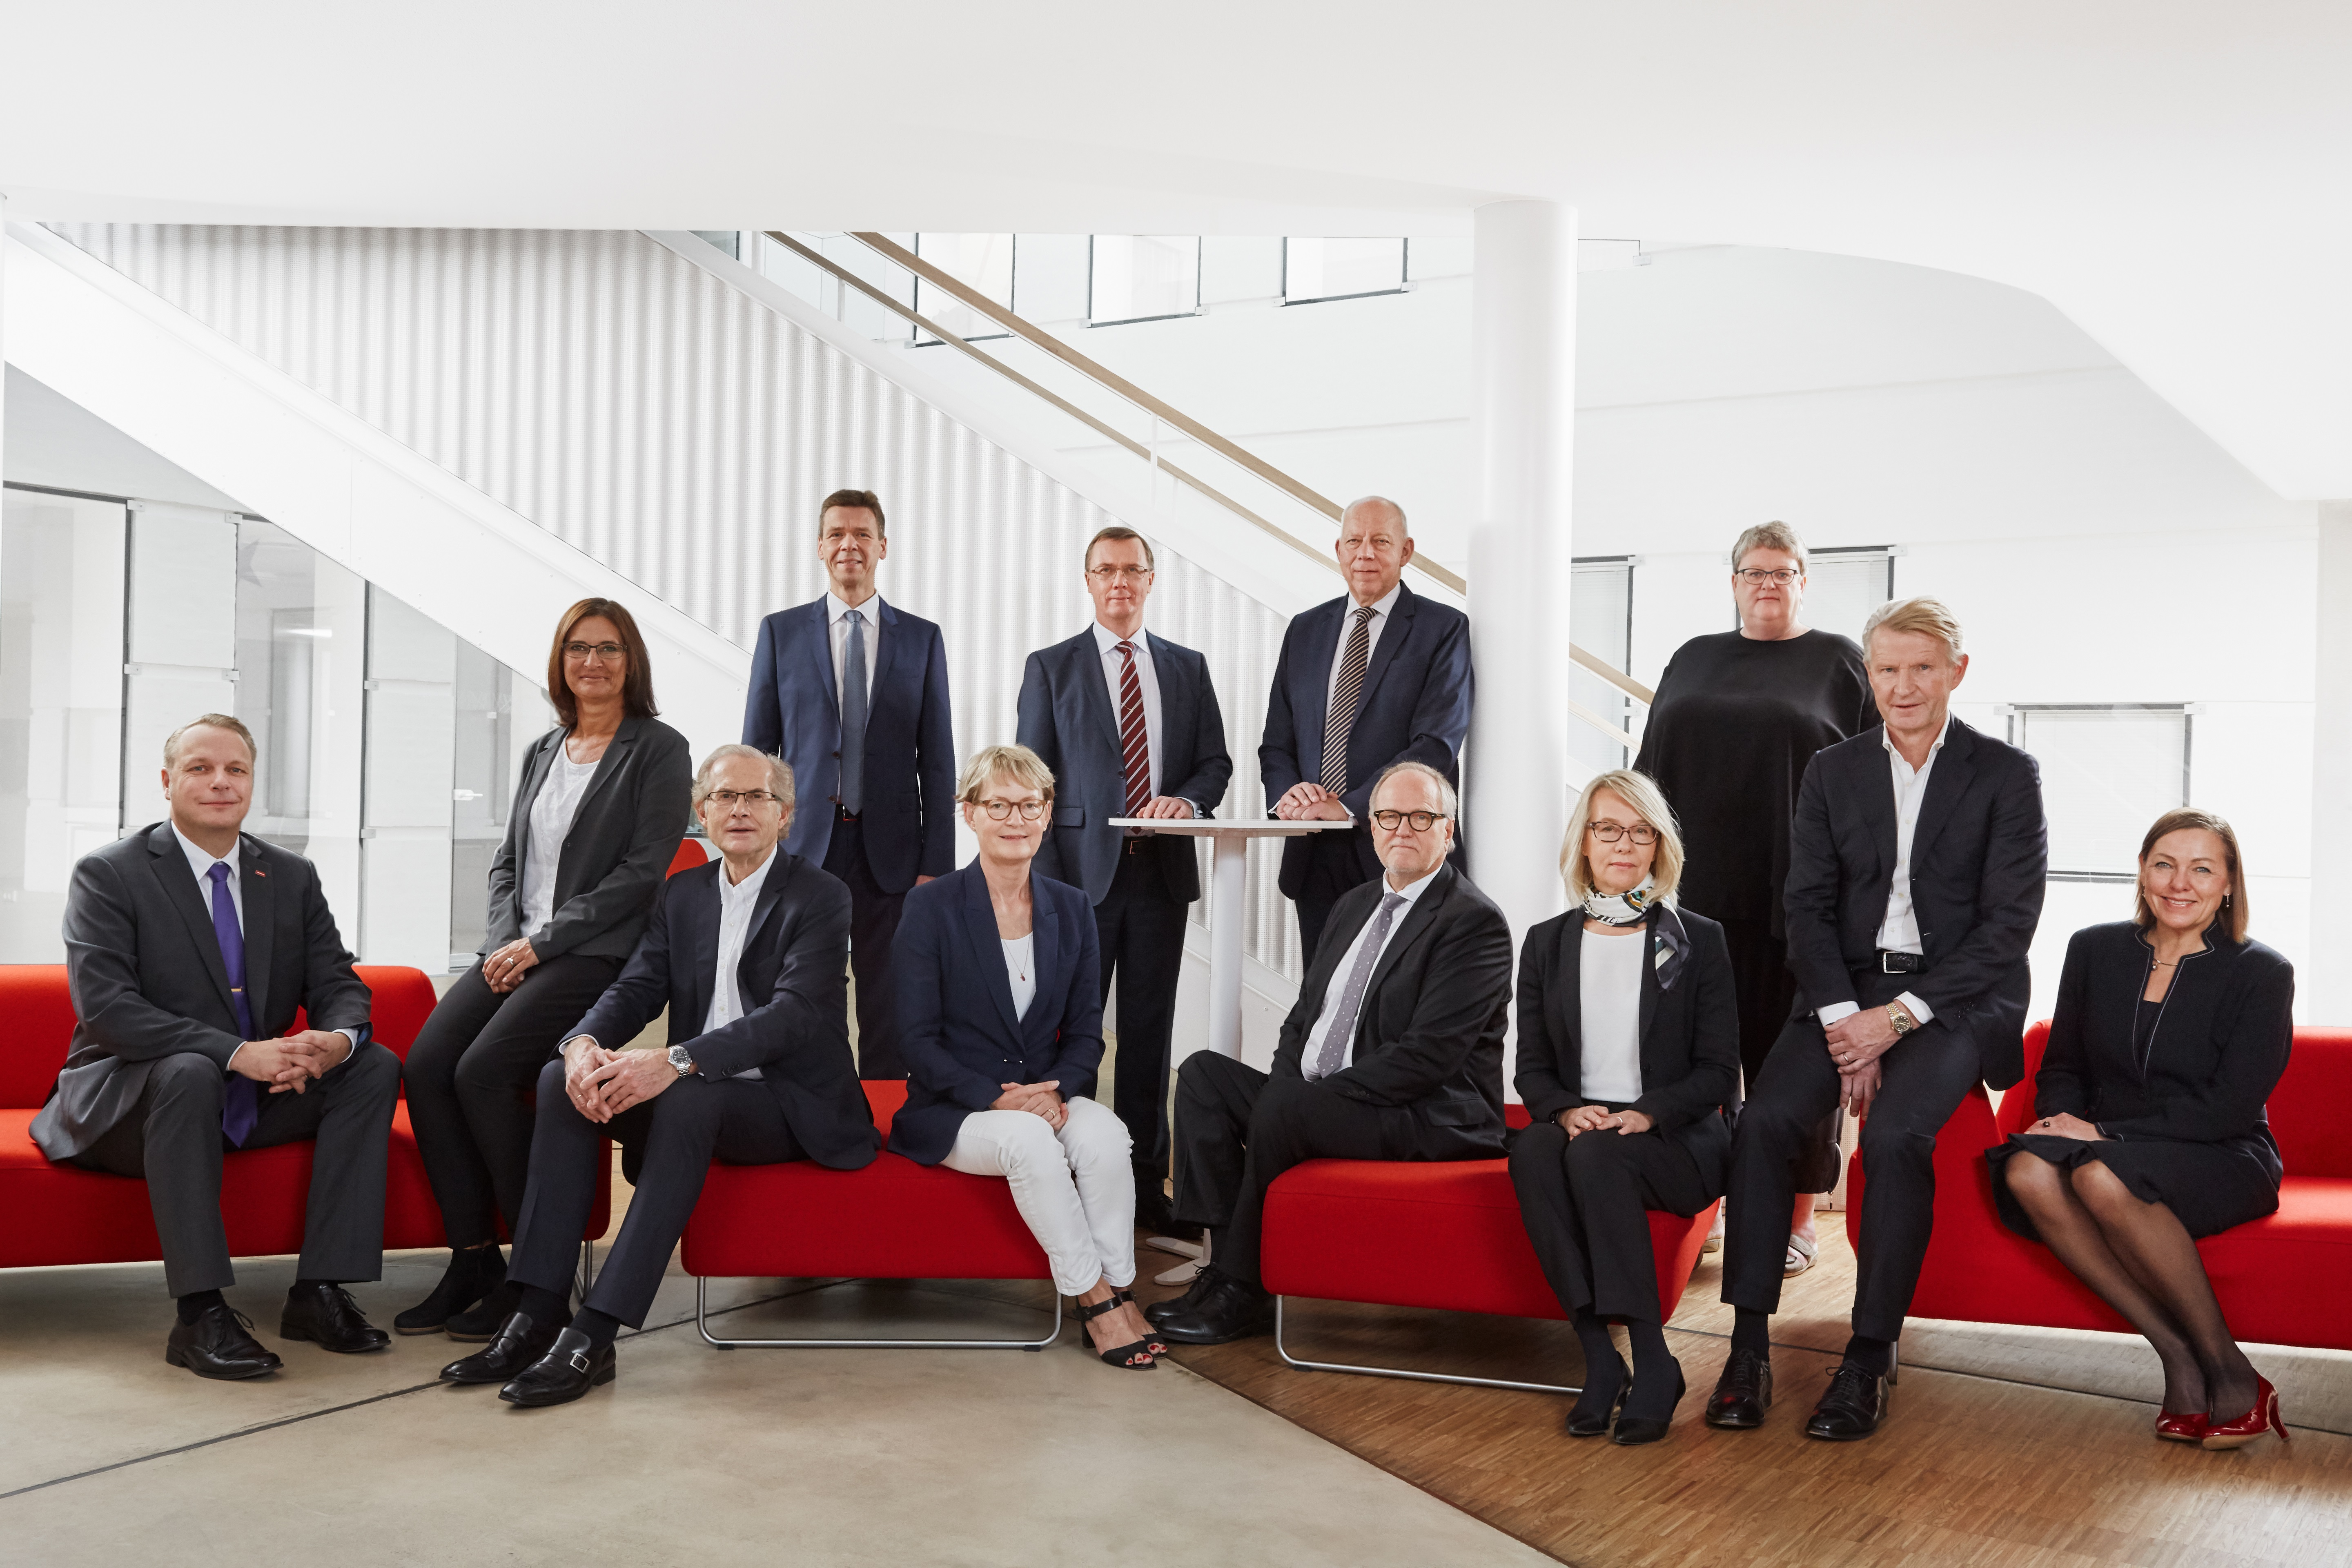 Tryg's Supervisory Board